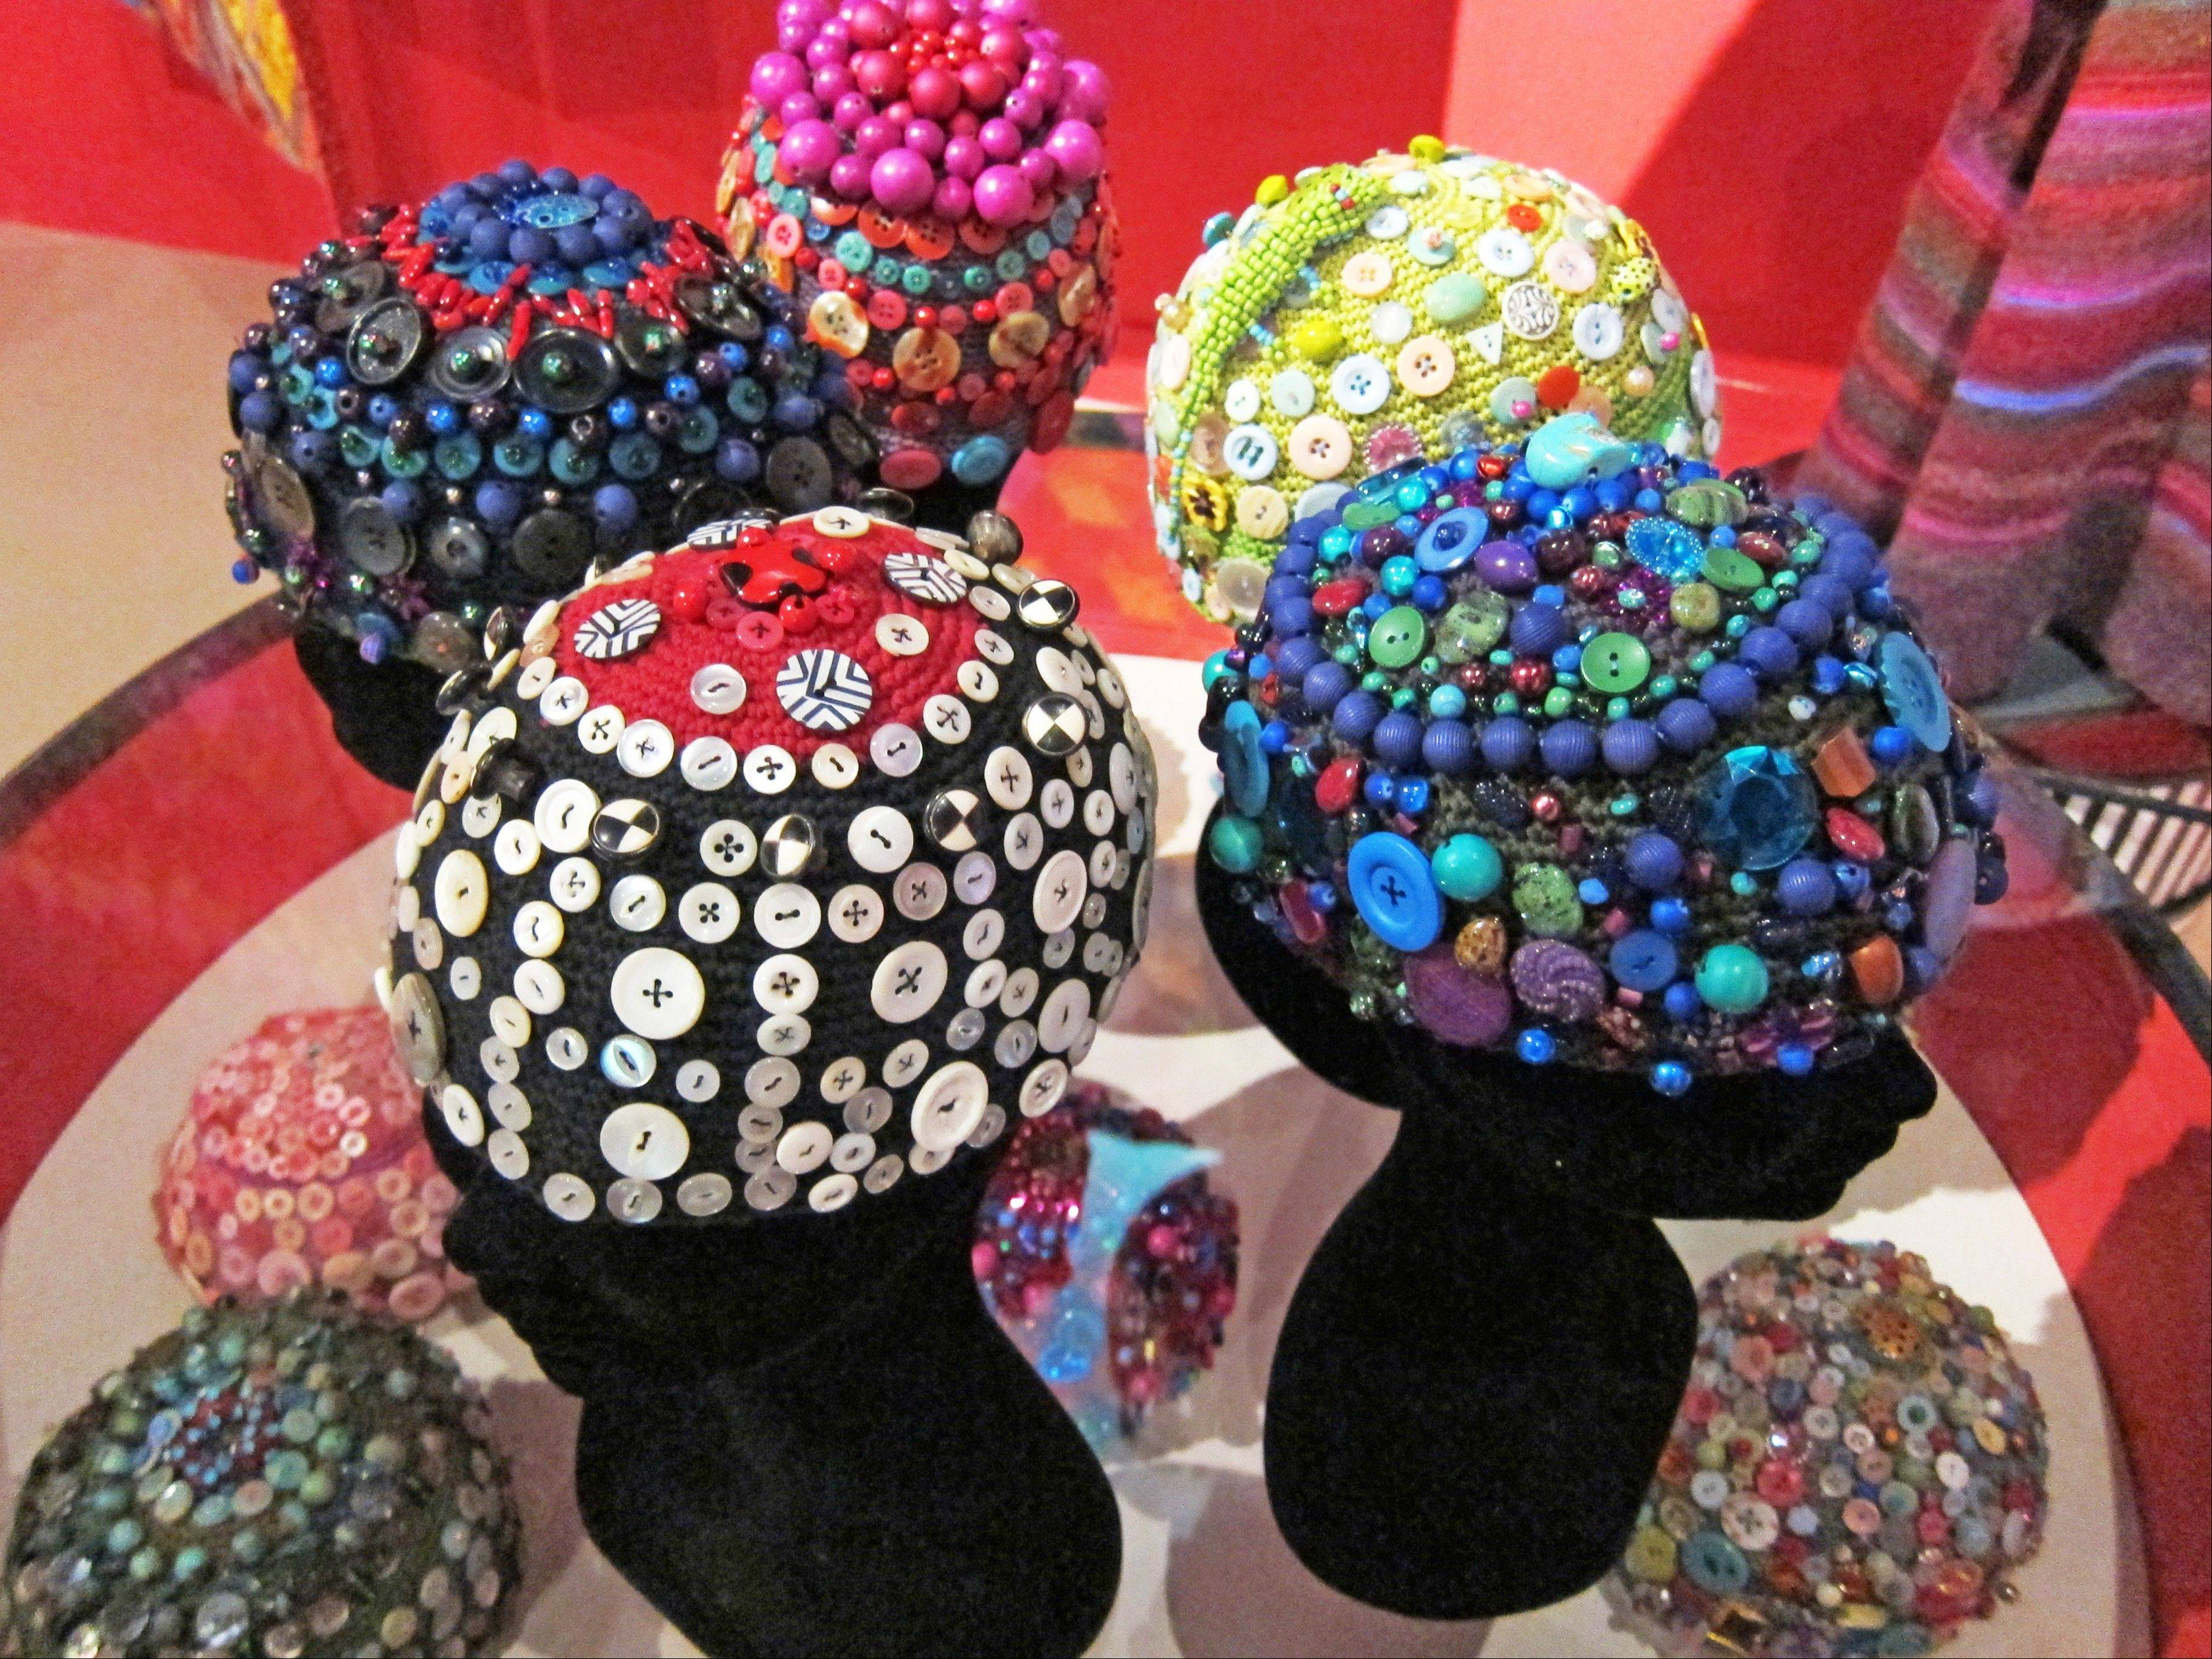 "Textile artist Kaffe Fassett's crocheted skull caps, which are embellished with buttons and beads. Dozens of similar caps appeared in the show ""Kaffe Fassett: A Life in Colour"" recently at the Fashion and Textile Museum in London."